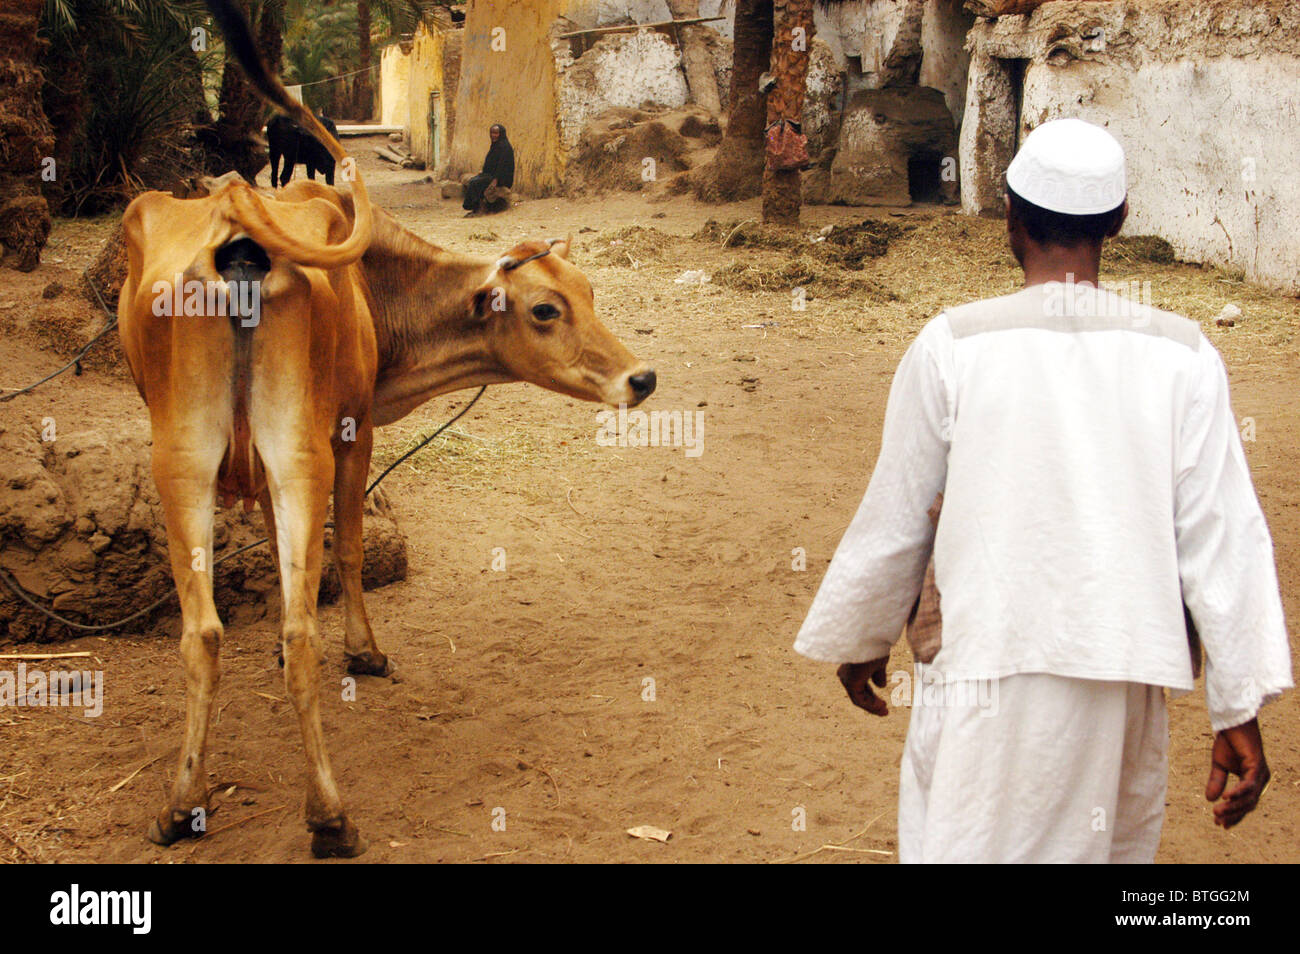 Funny Pictures About Egypt: Egyptian Man And His Funny Cow In A Nubian Village On The